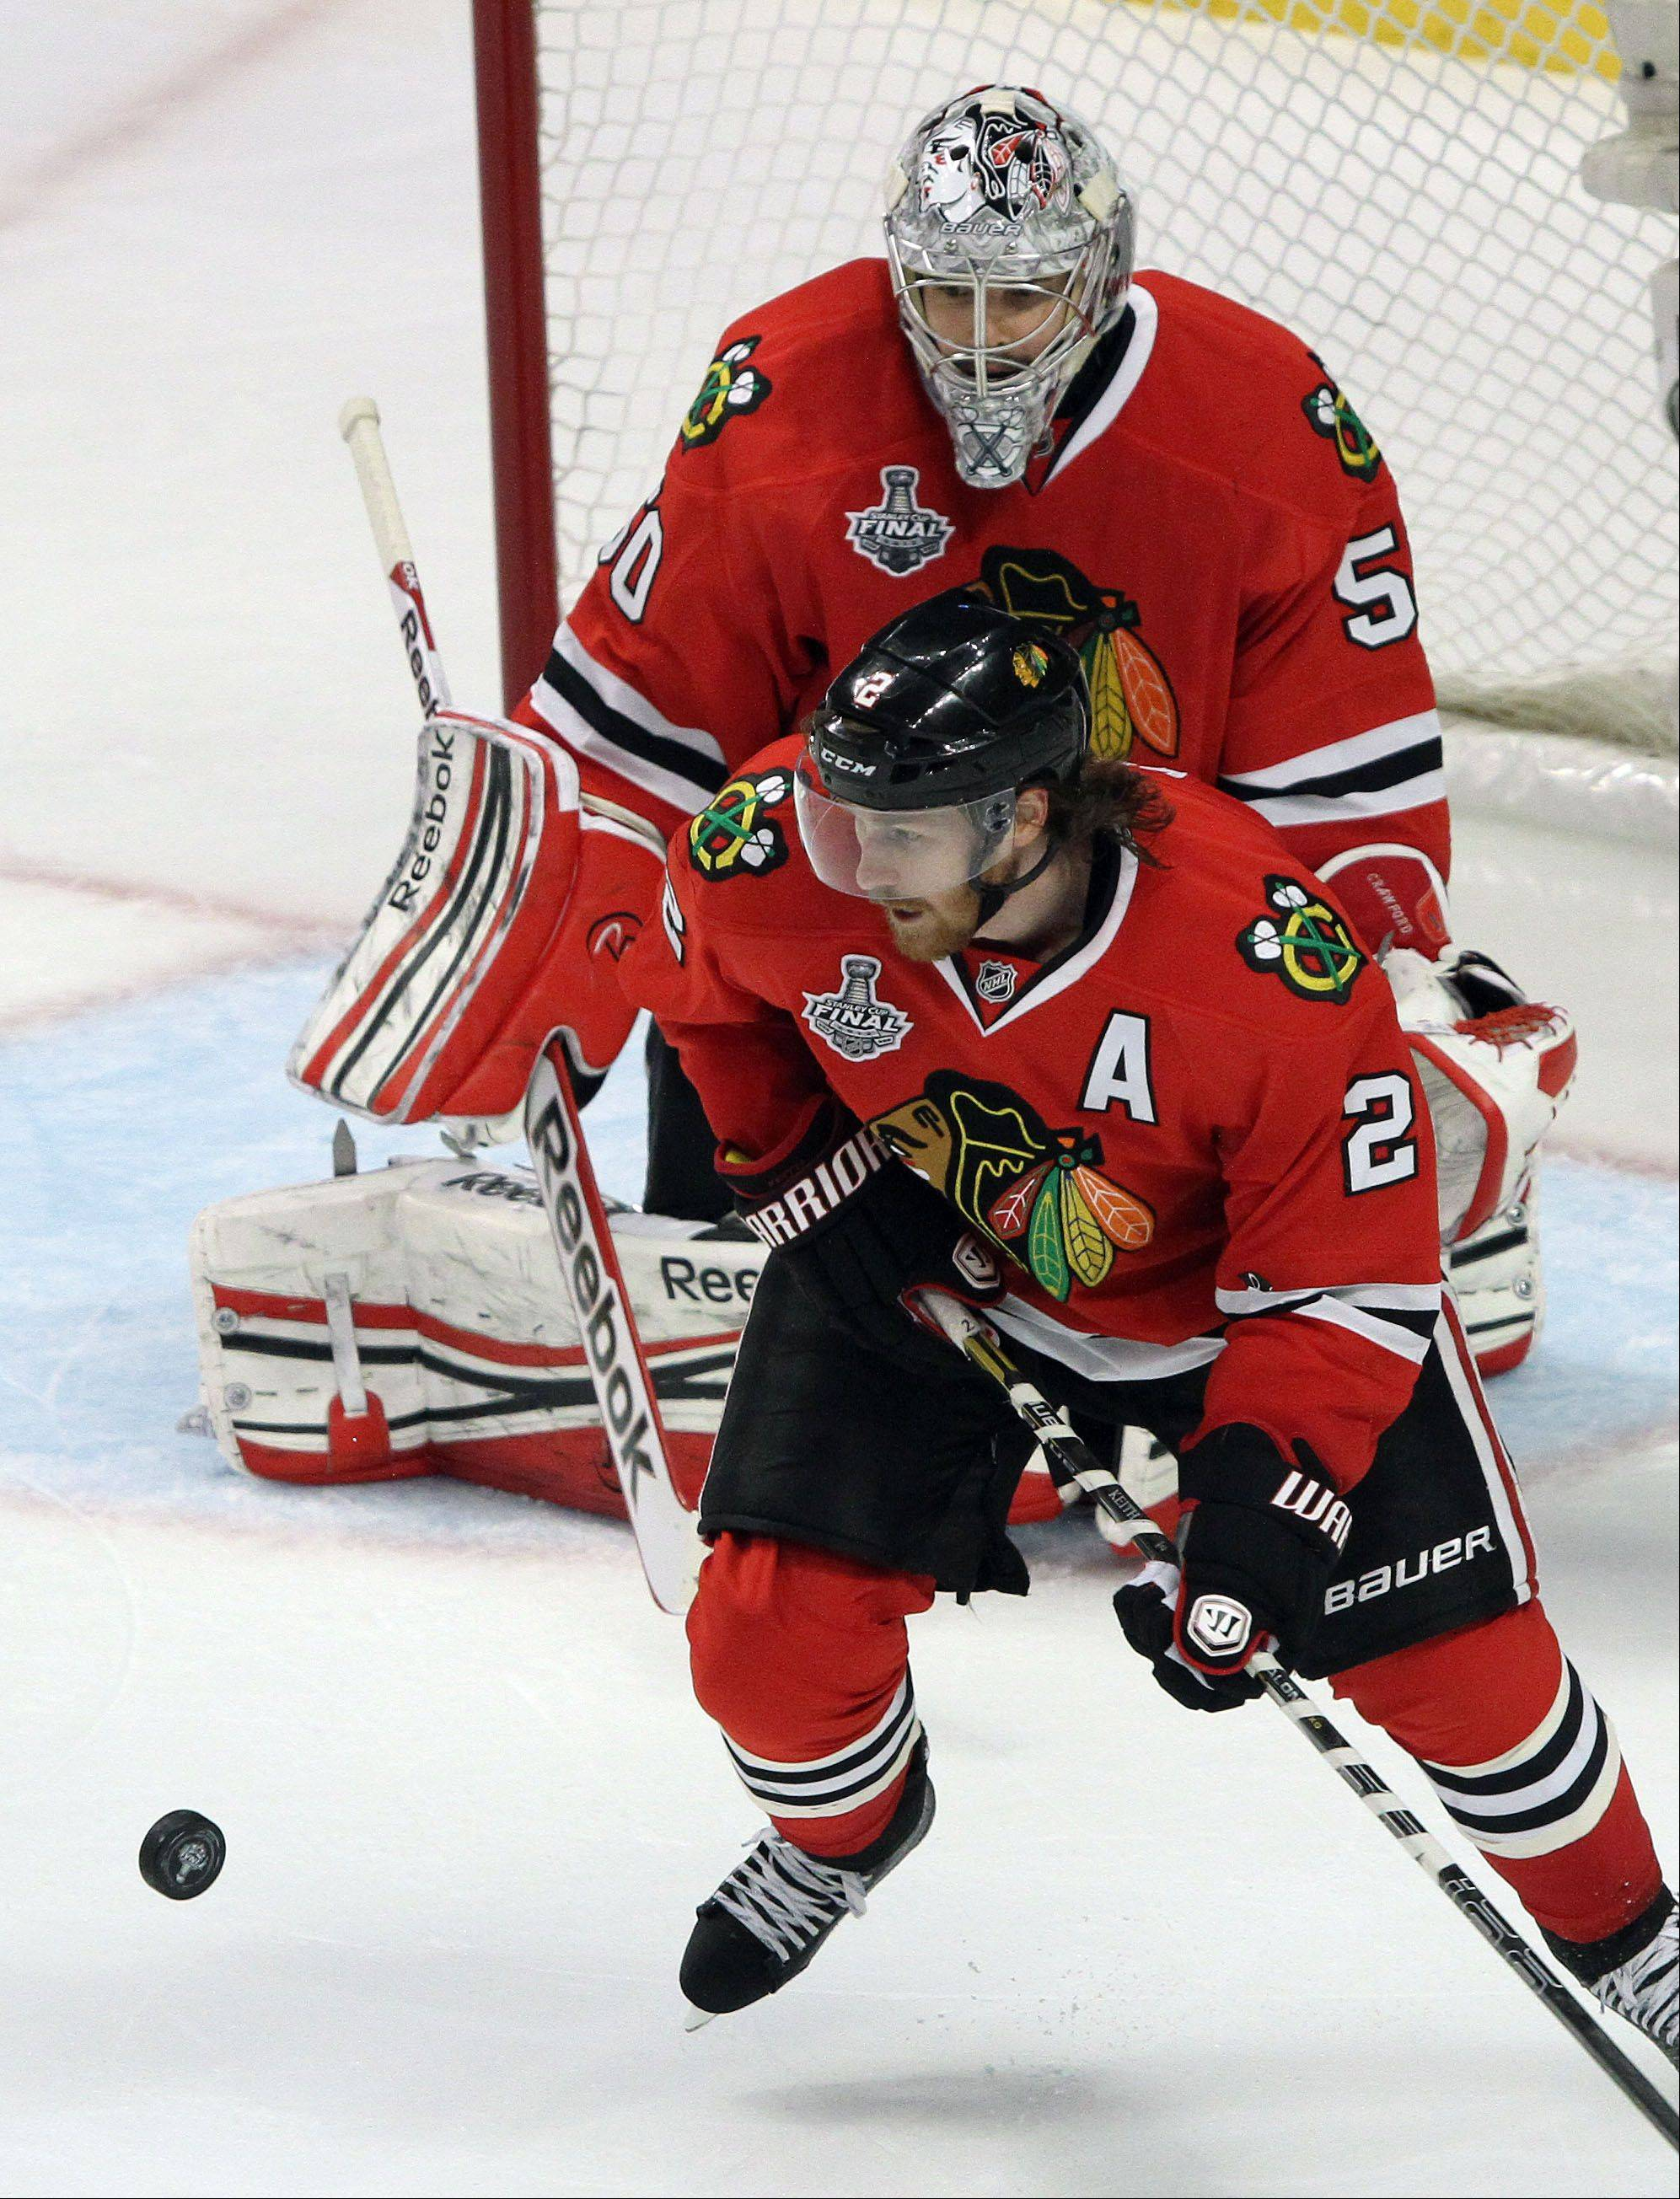 Blackhawks defenseman Duncan Keith, seen here breaking up a play in front of goalie Corey Crawford, logged 32:09 of ice time in Saturday night�s Game 2.